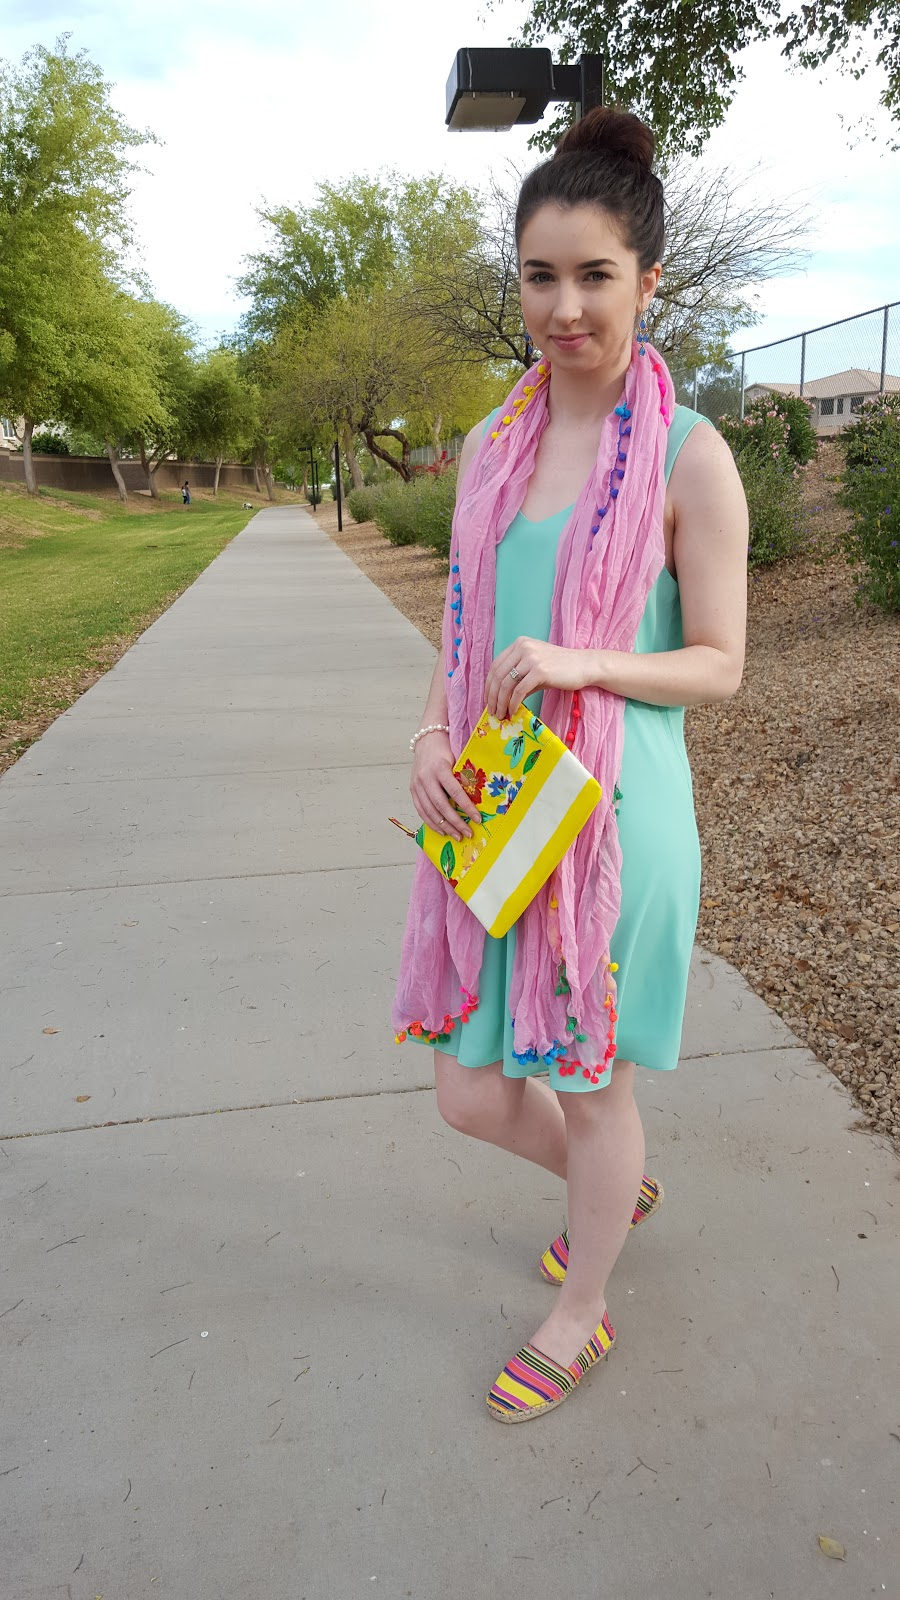 Pair a bright flowy dress with a colorful pompom scarf and espadrilles